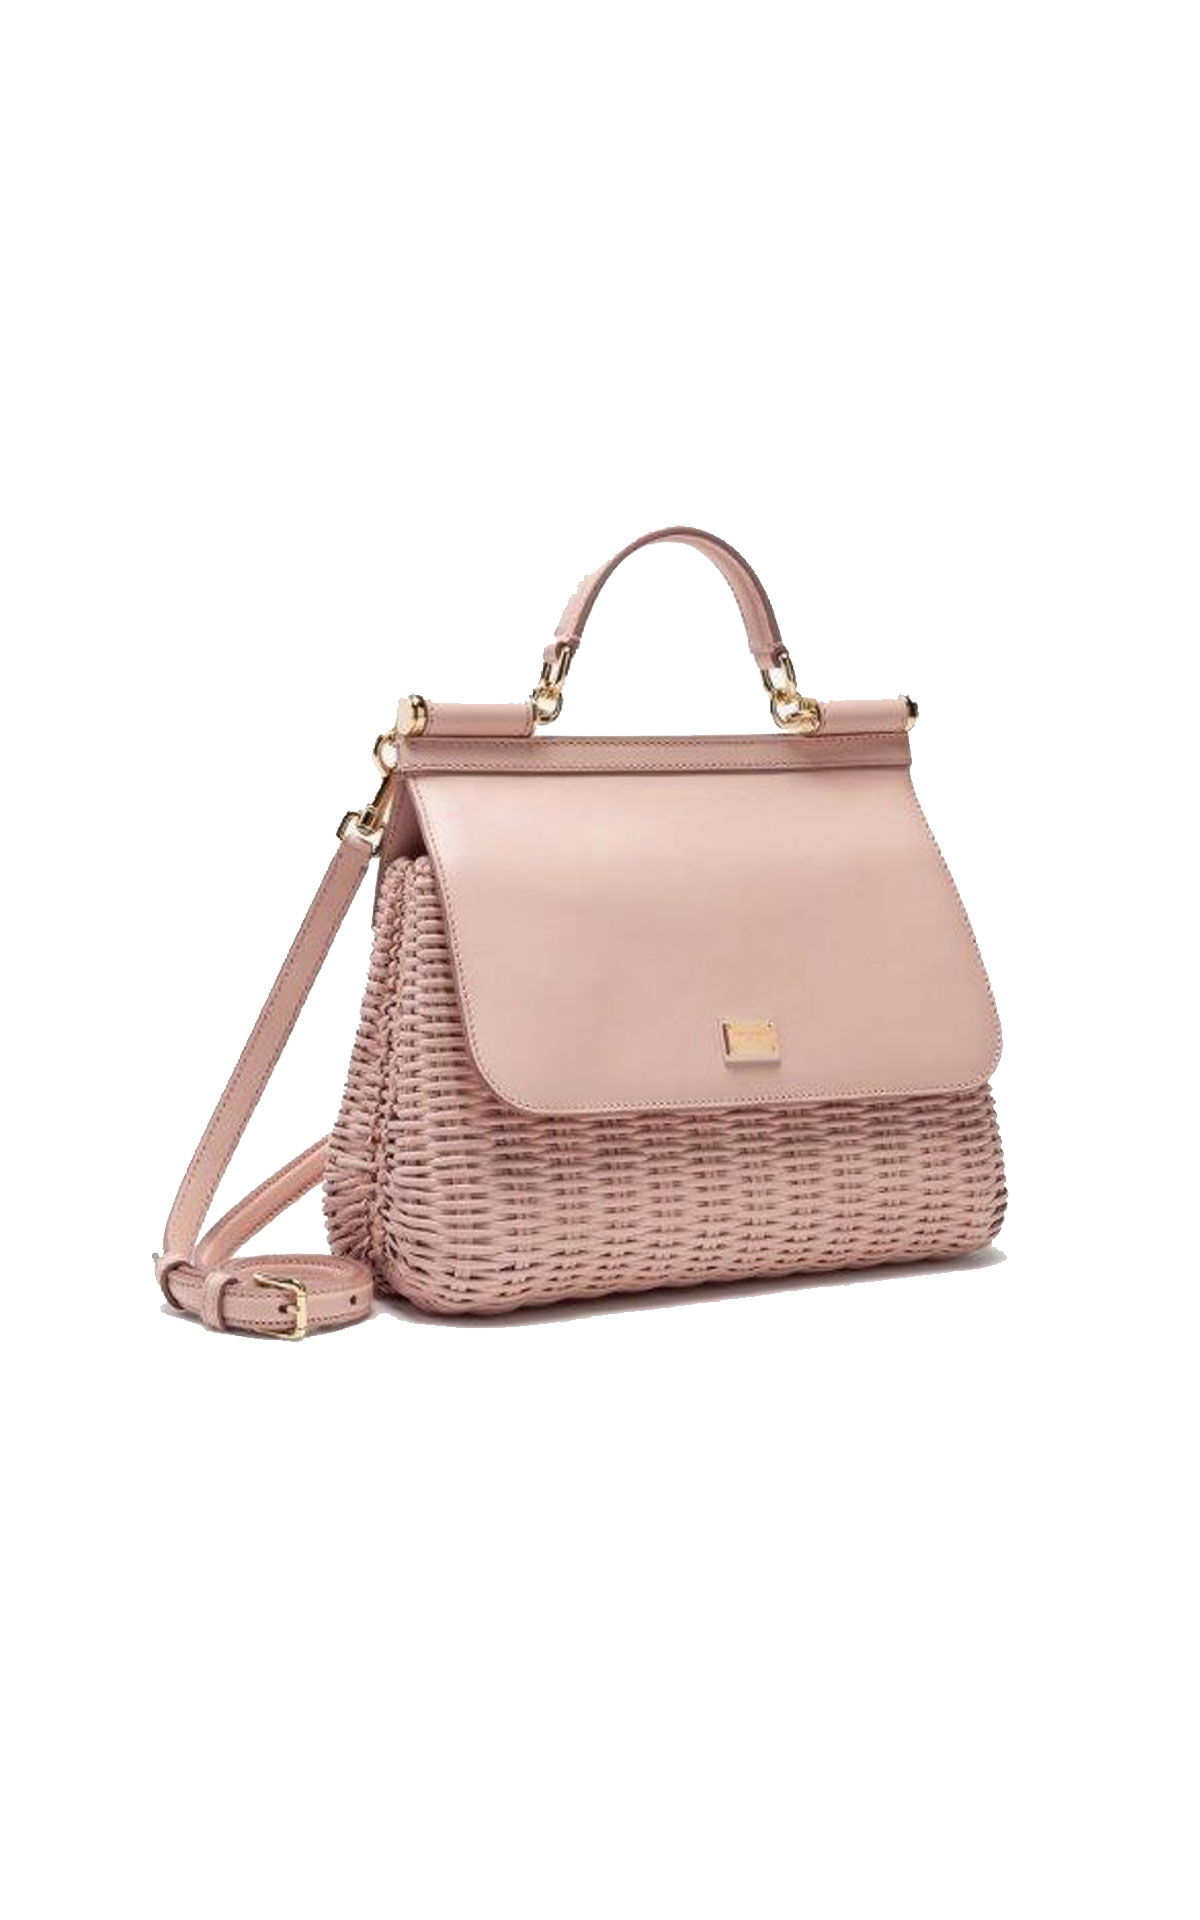 Dolce & Gabbana Leather and wicker sicily medium bag from Bicester Village